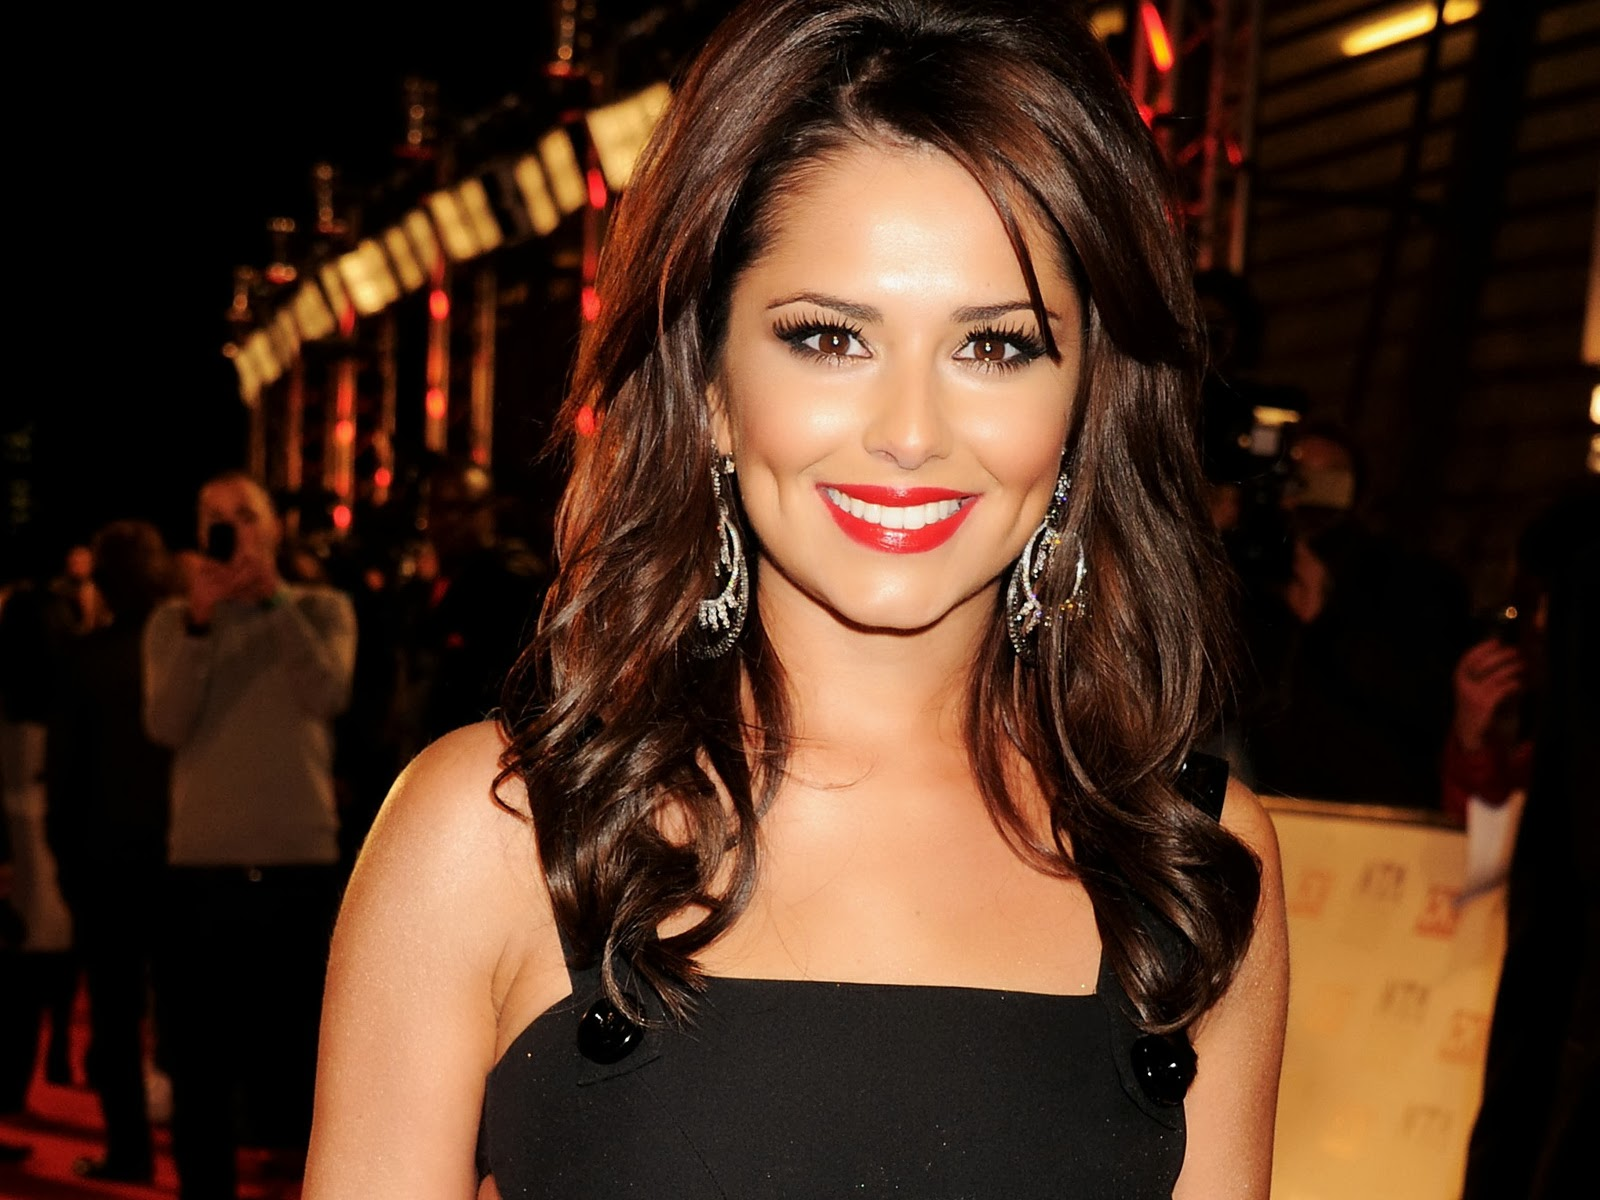 World Celebrities: Cheryl Cole Profile & Pictures 2013 Cheryl Cole Photos